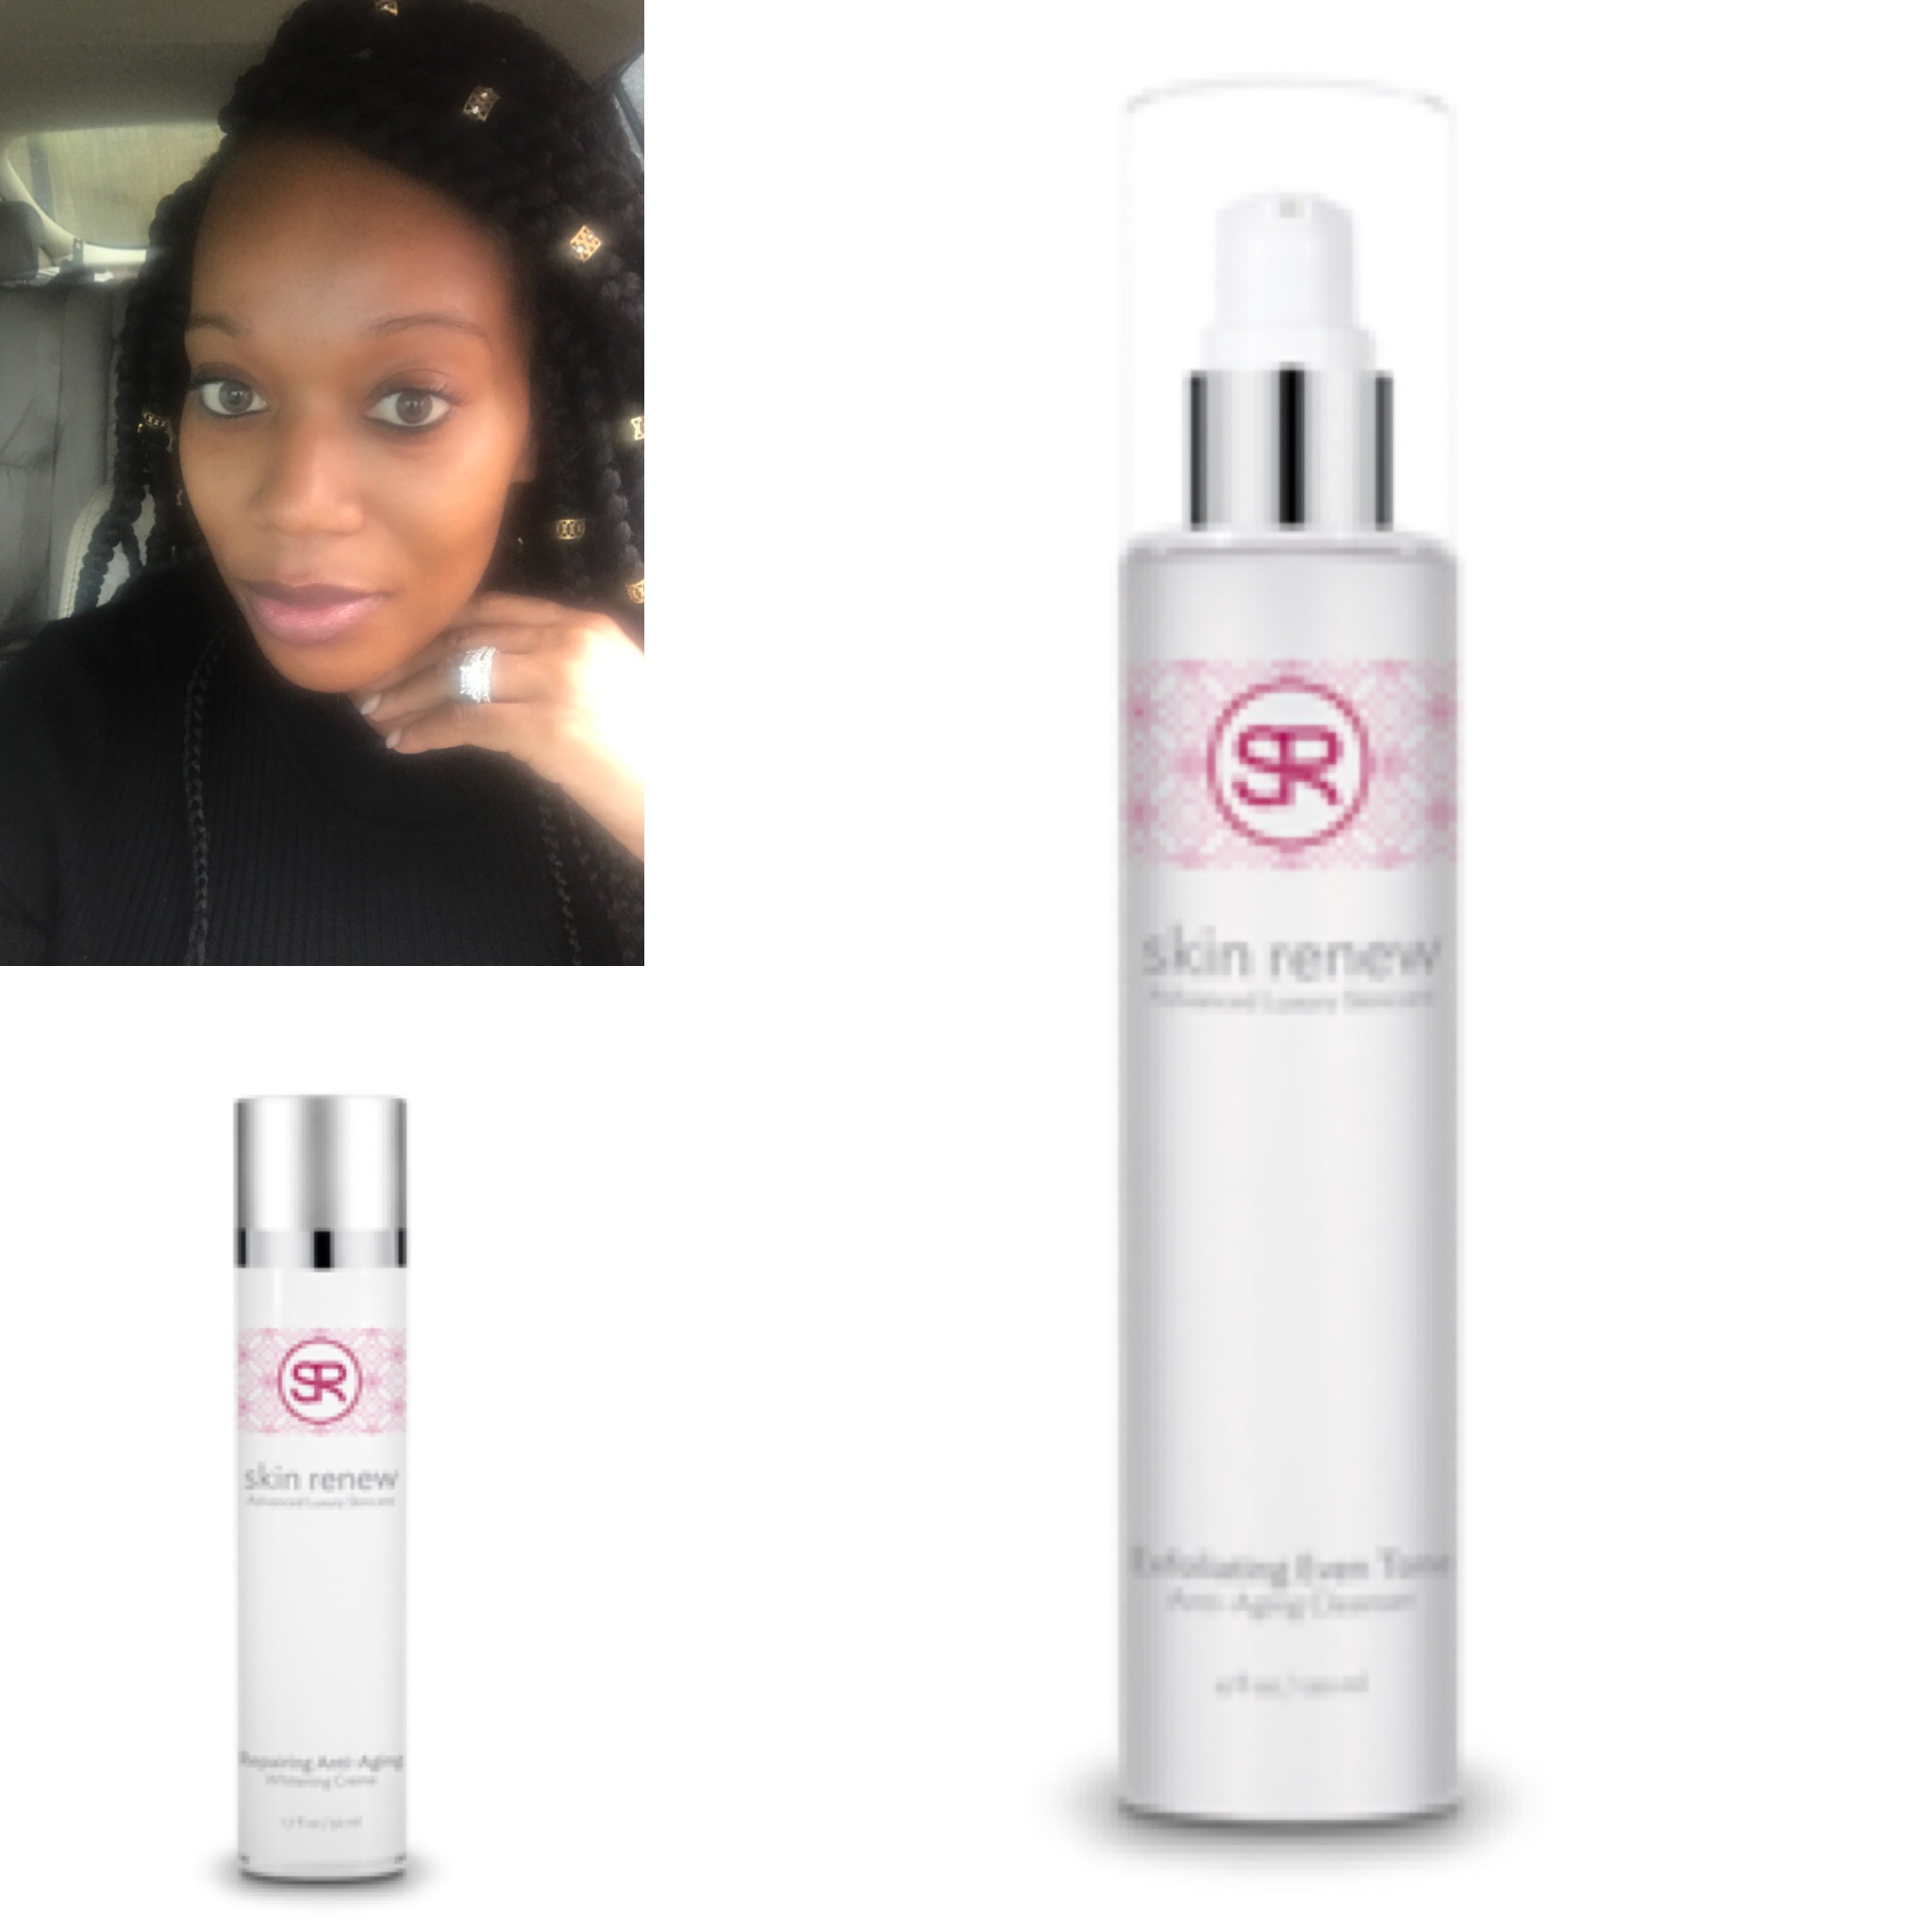 Review of Tonique Brightening Anti-aging Cleanser & Brightening Anti-aging creme